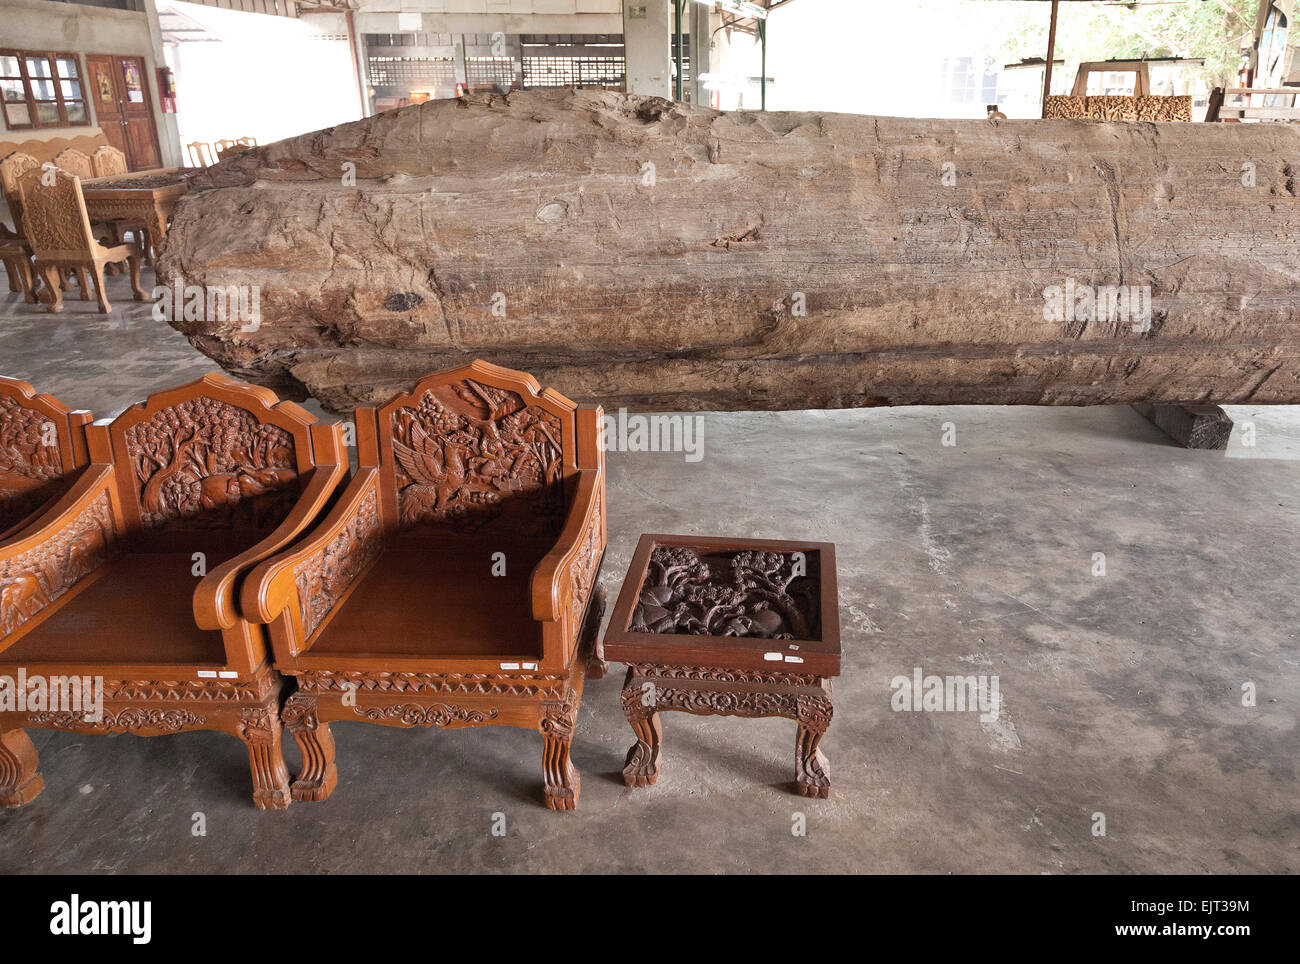 Chiang Mai, Northern Thailand, hardwood carving, chairs, teak log in background - Stock Image